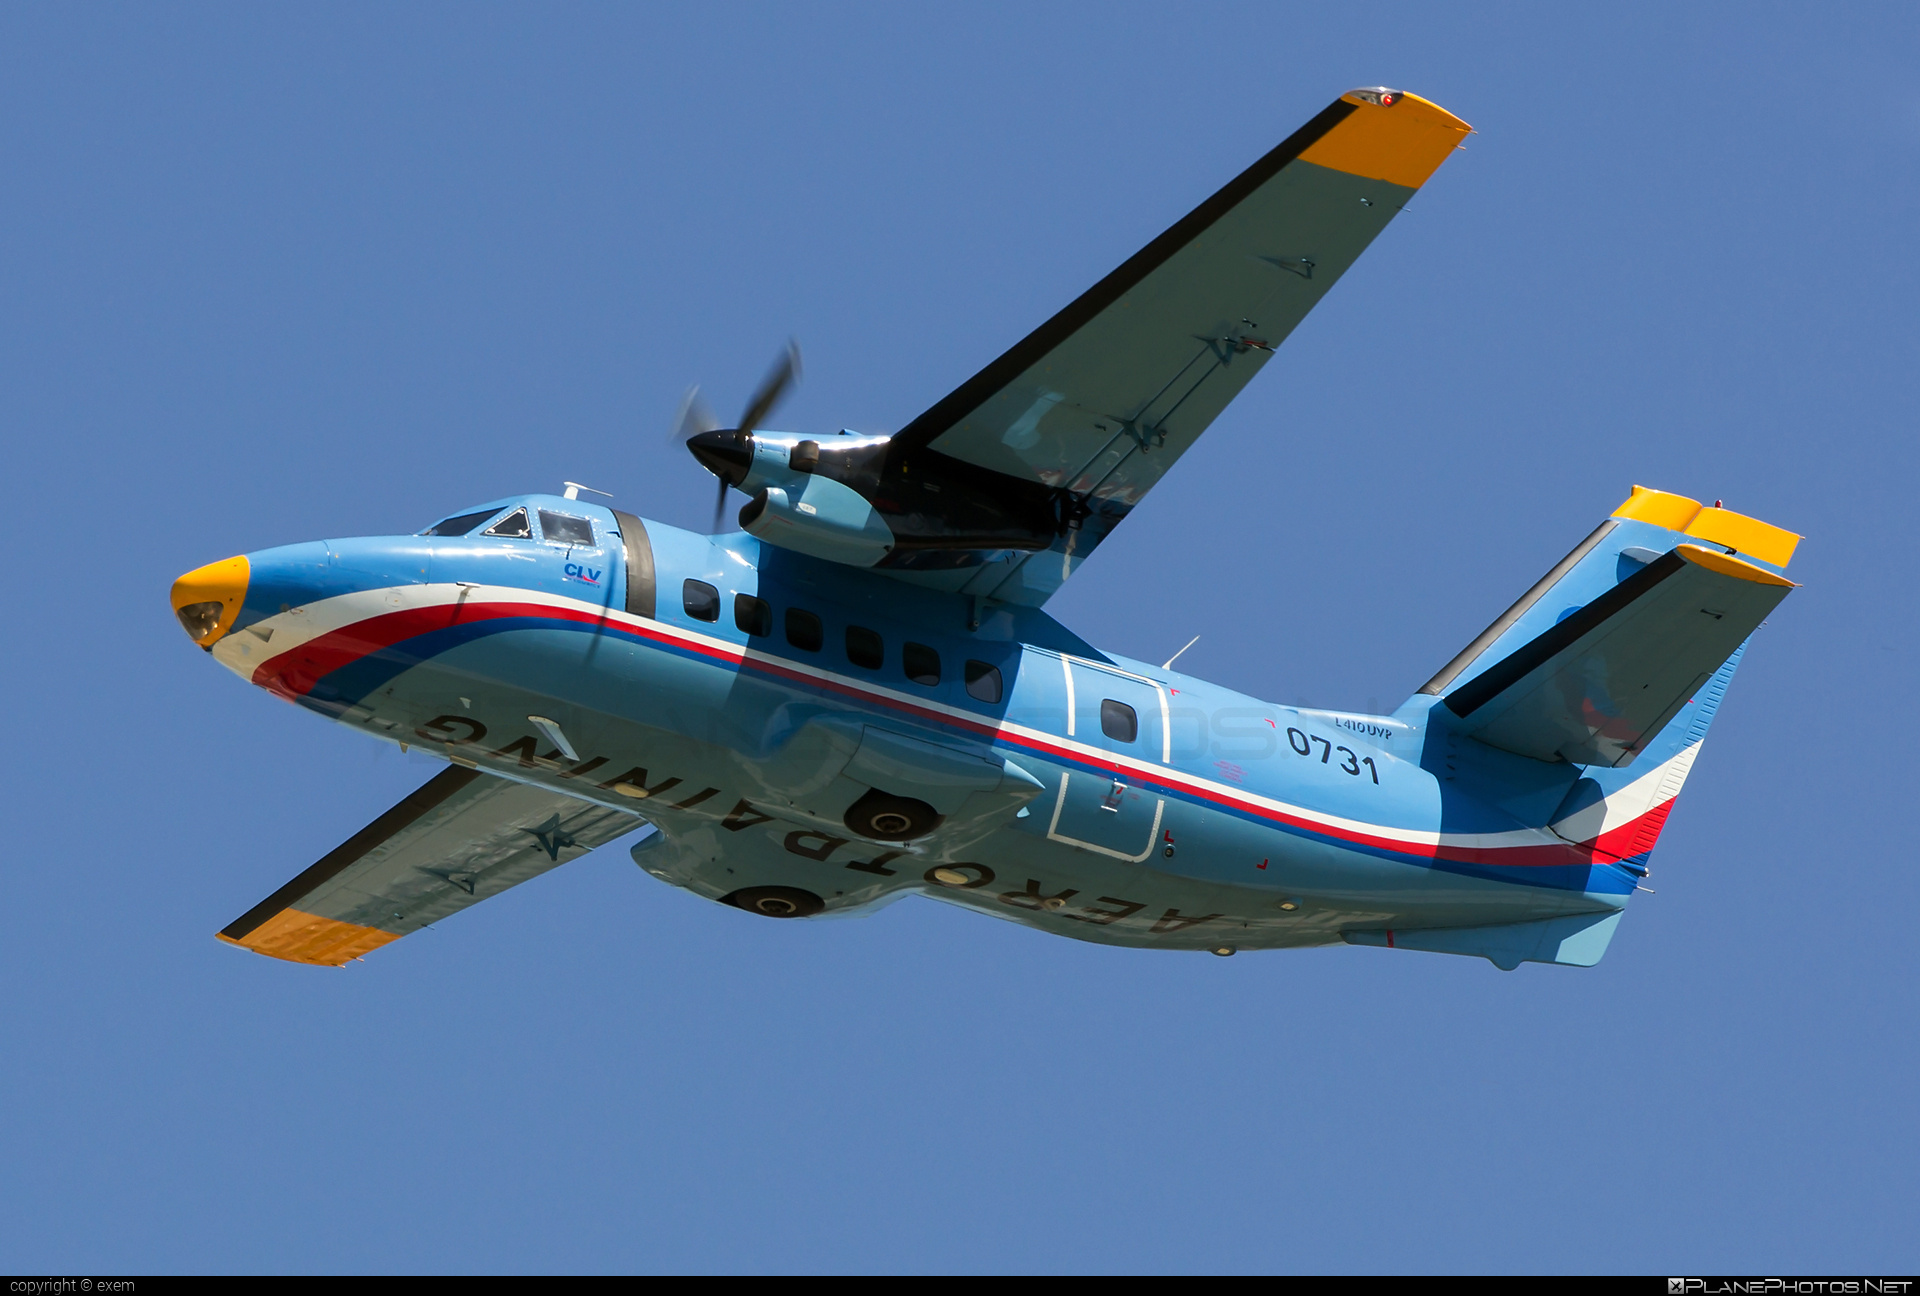 Let L-410UVP Turbolet - 0731 operated by Centrum leteckého výcviku (Flight Training Center) #let